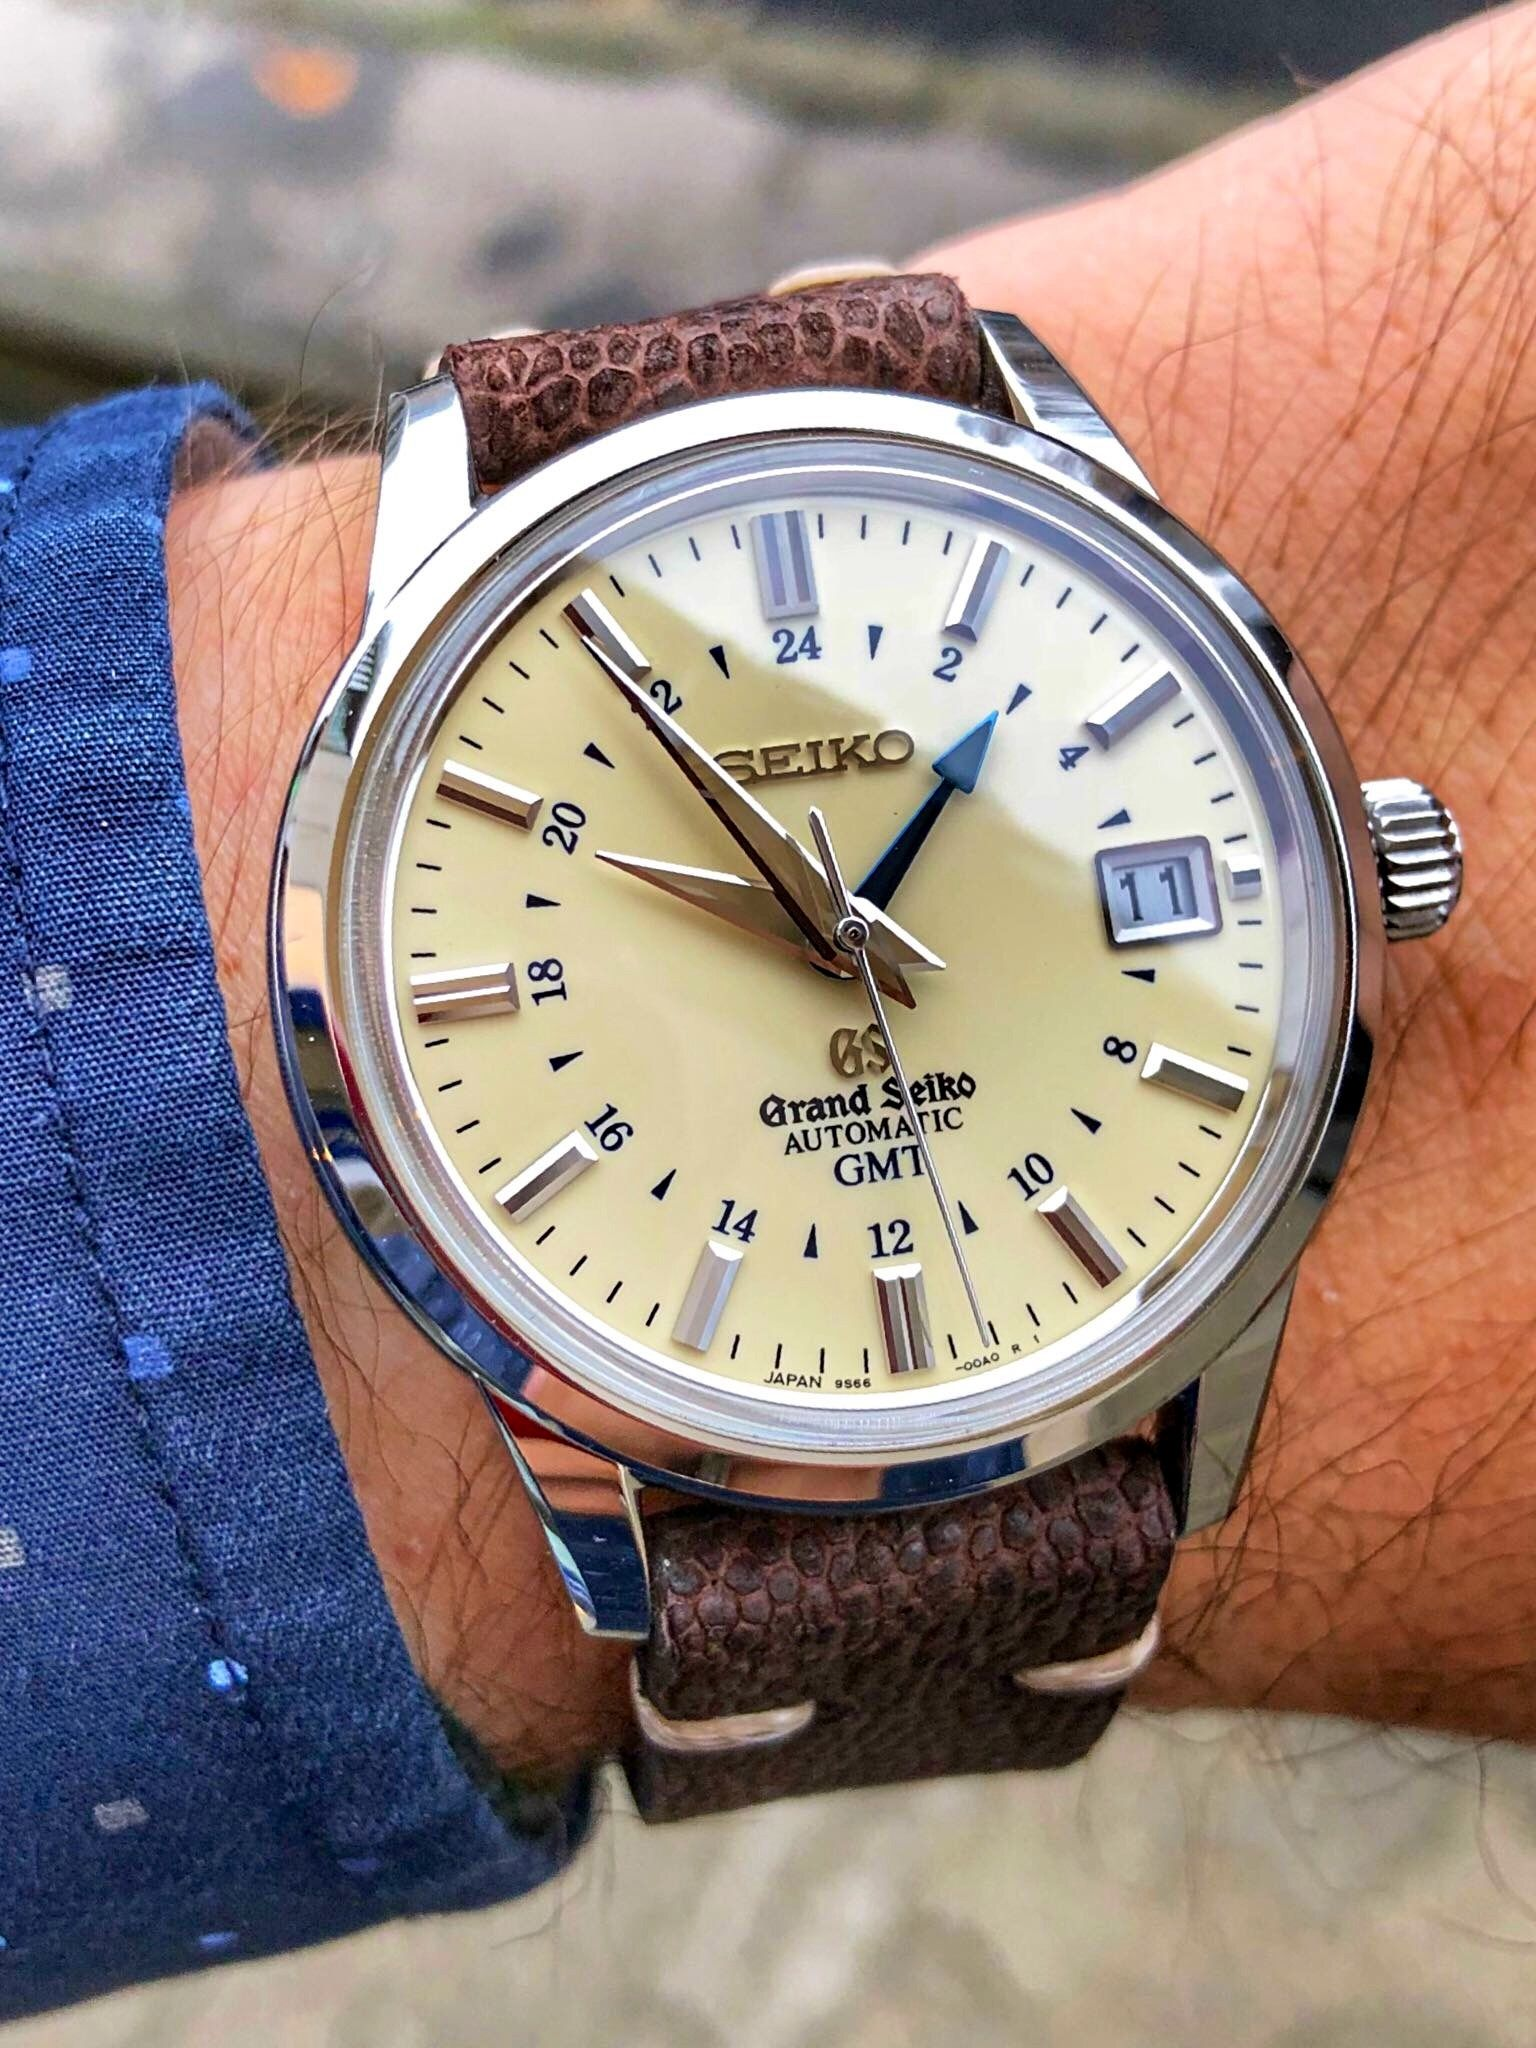 Grand Seiko Gmt Watches For Men Vintage Watches Luxury Watches For Men